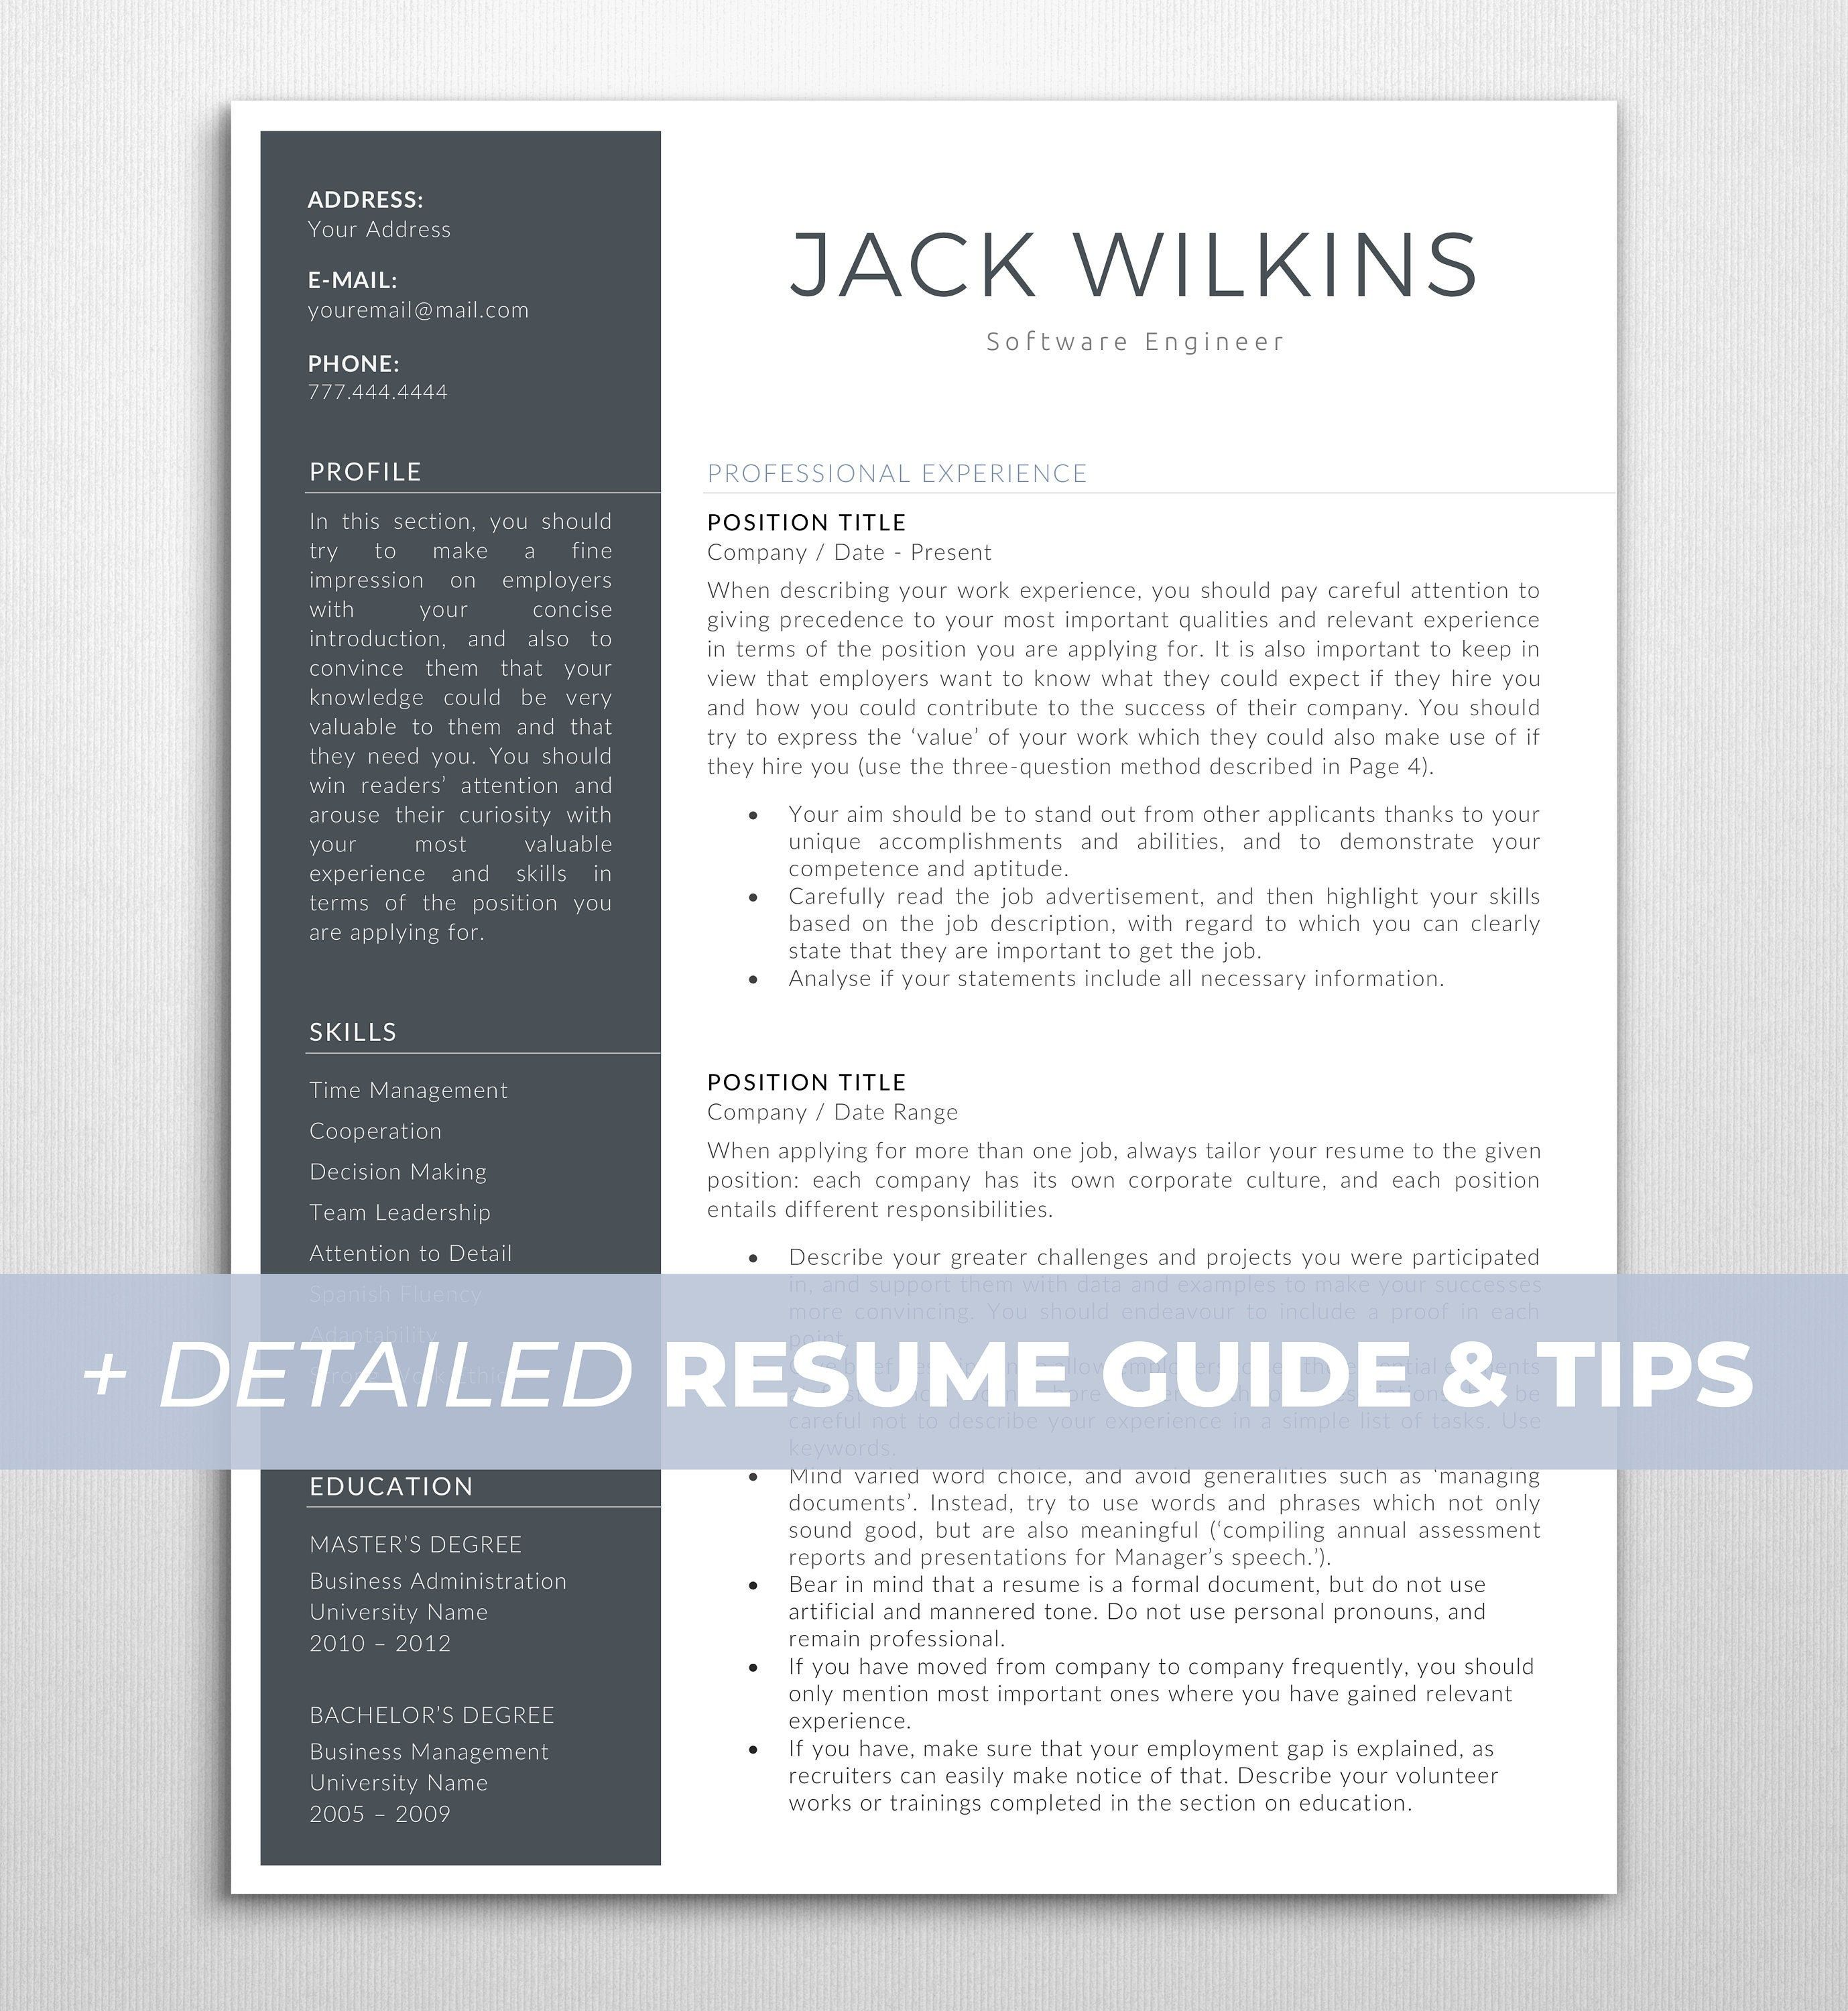 Modern Cv Template For Word Executive Resume Template Professional Resume Design Instant Download Free Resume Writing Guide 3 Page Cv Resume Design Professional Executive Resume Template Cv Template